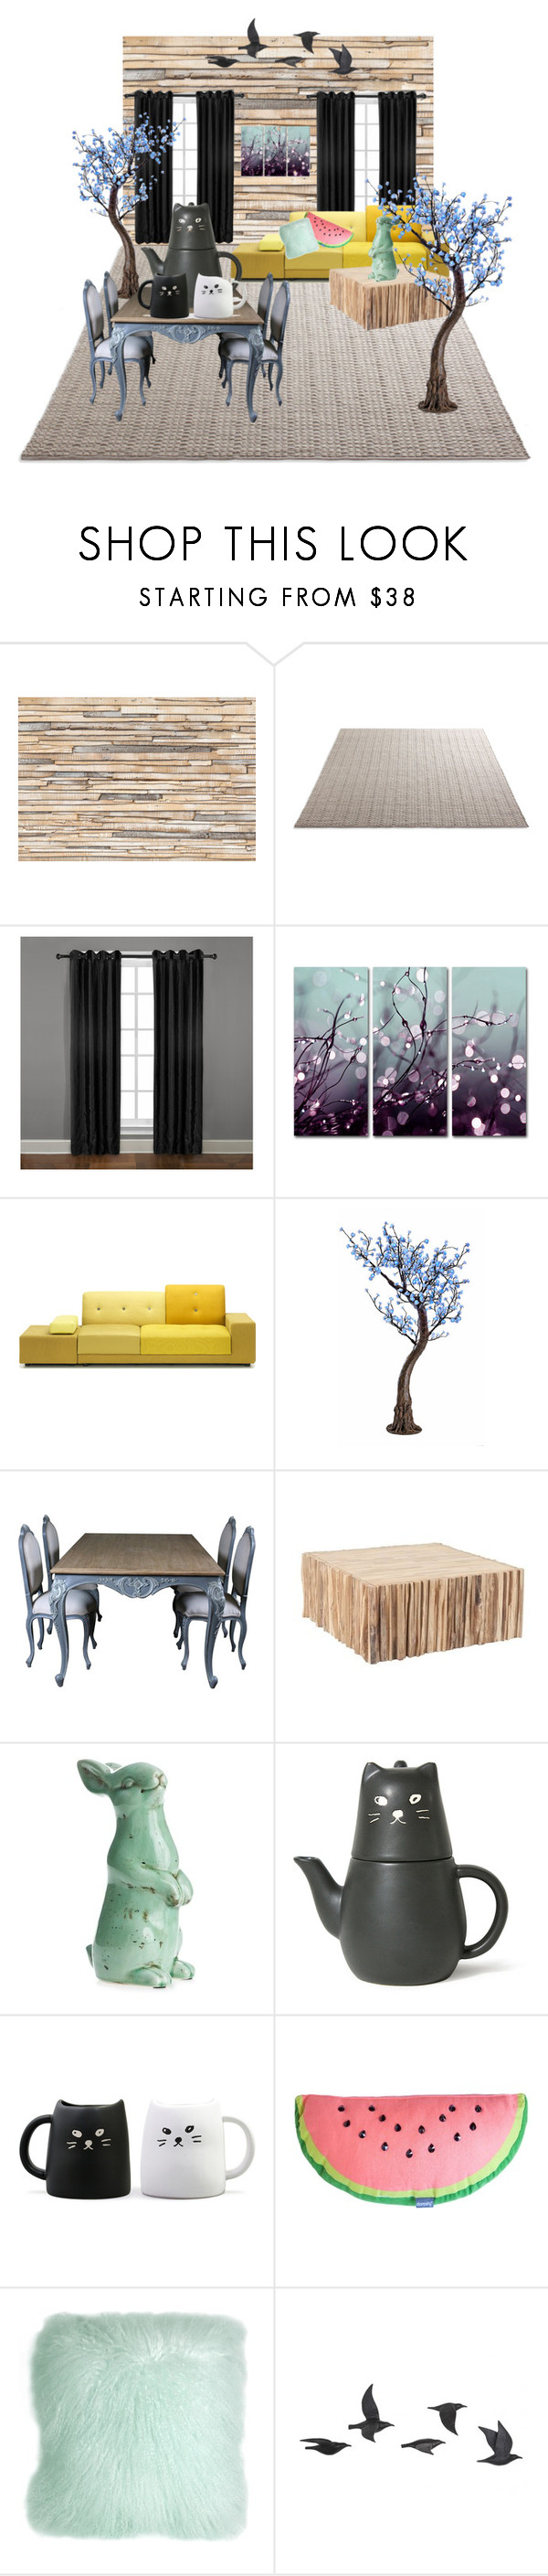 """""""Living"""" by tessa-janson ❤ liked on Polyvore featuring interior, interiors, interior design, home, home decor, interior decorating, Brewster Home Fashions, Veratex, Trademark Fine Art and Polder"""